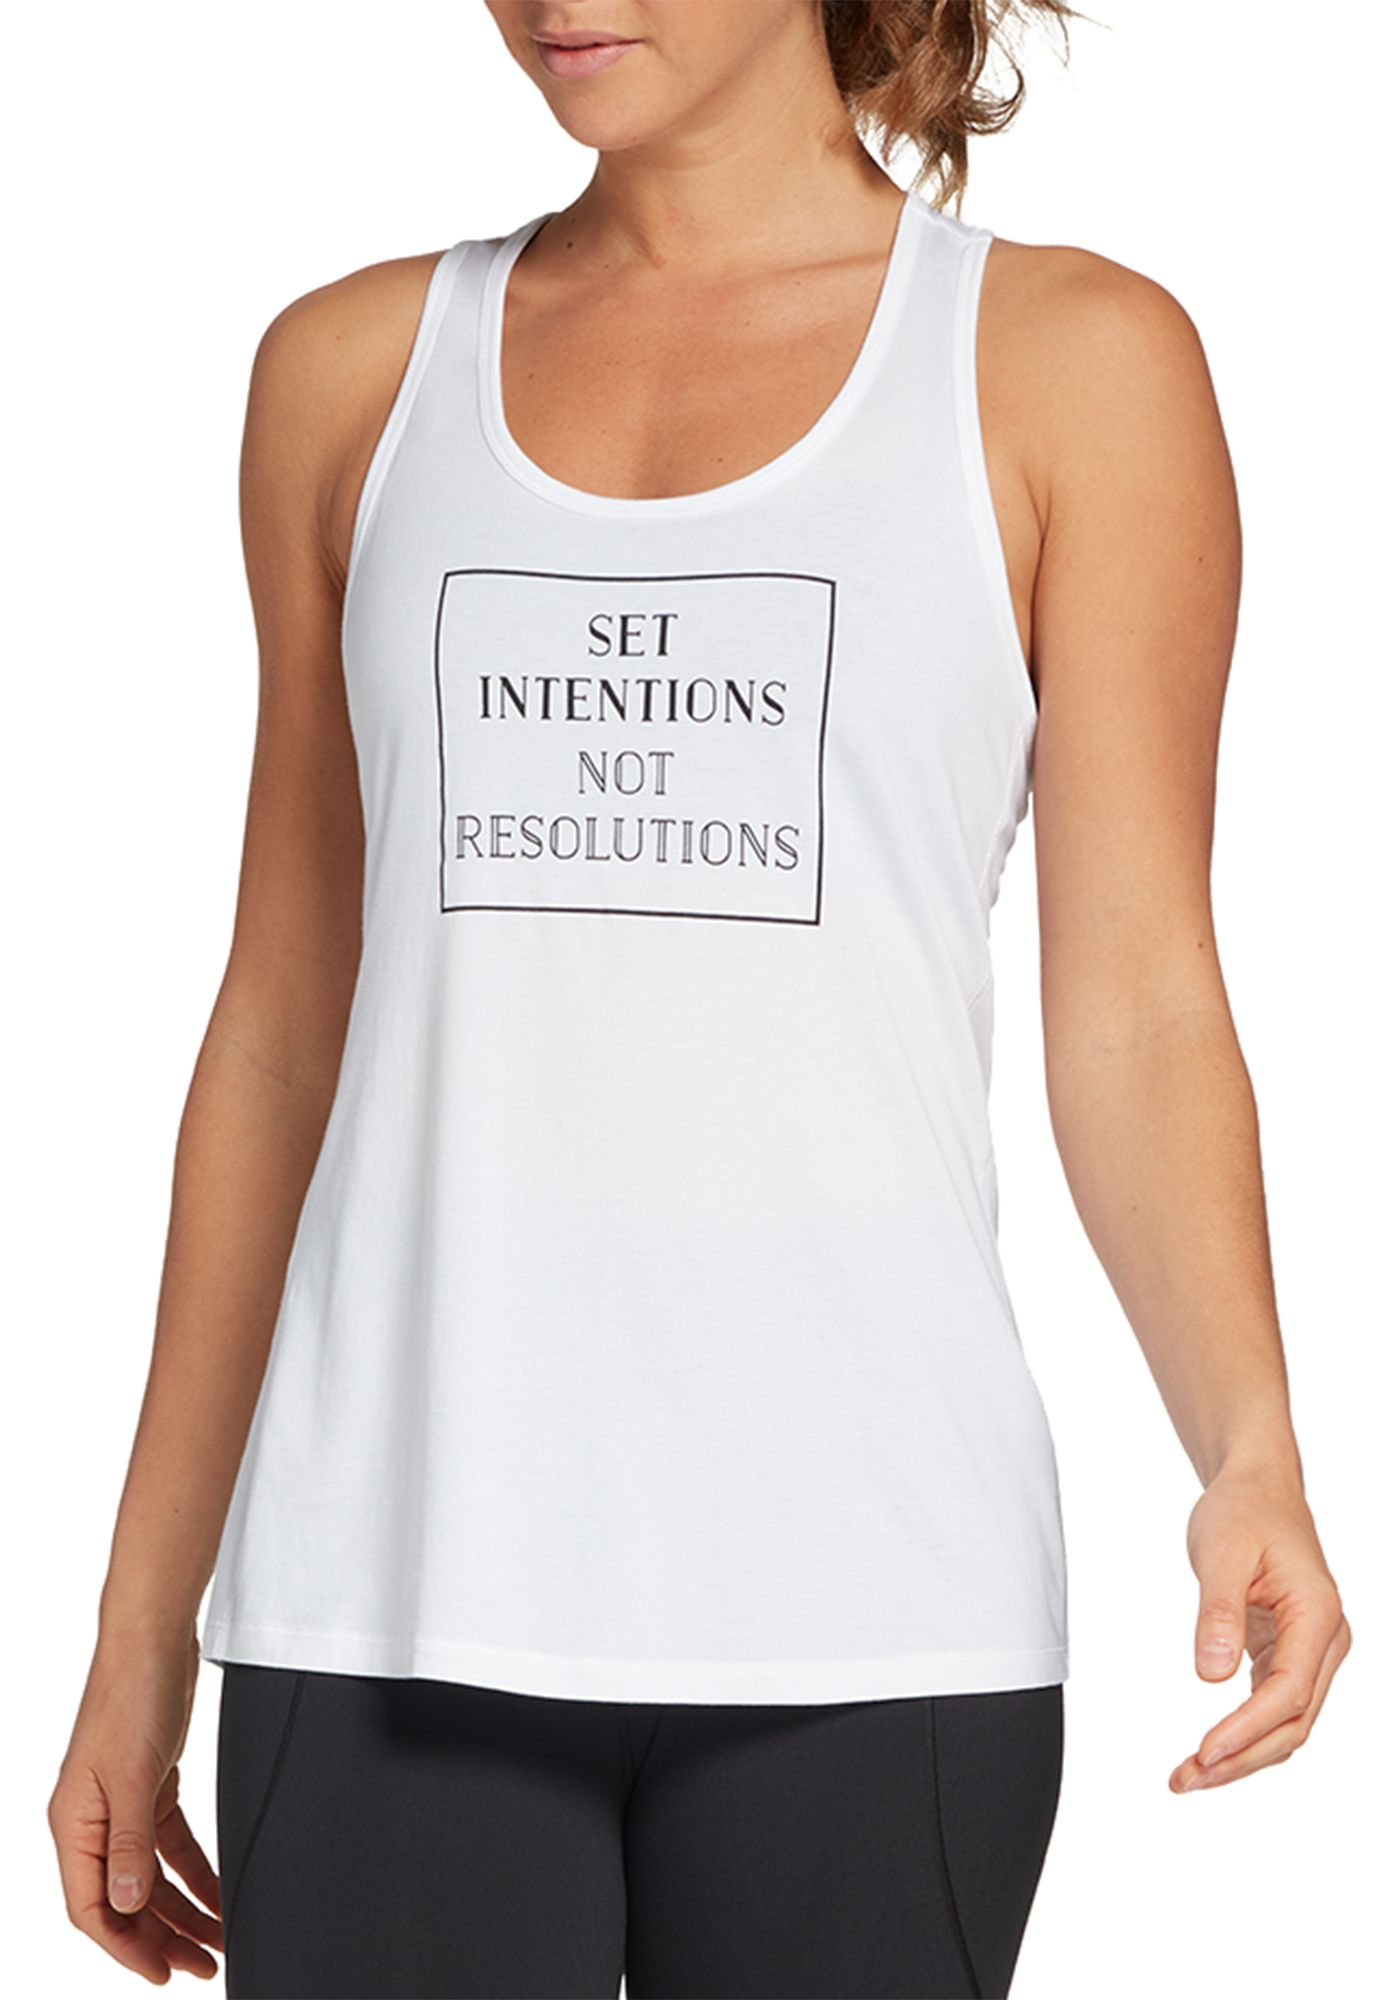 CALIA by Carrie Underwood Women's Graphic Tank Top